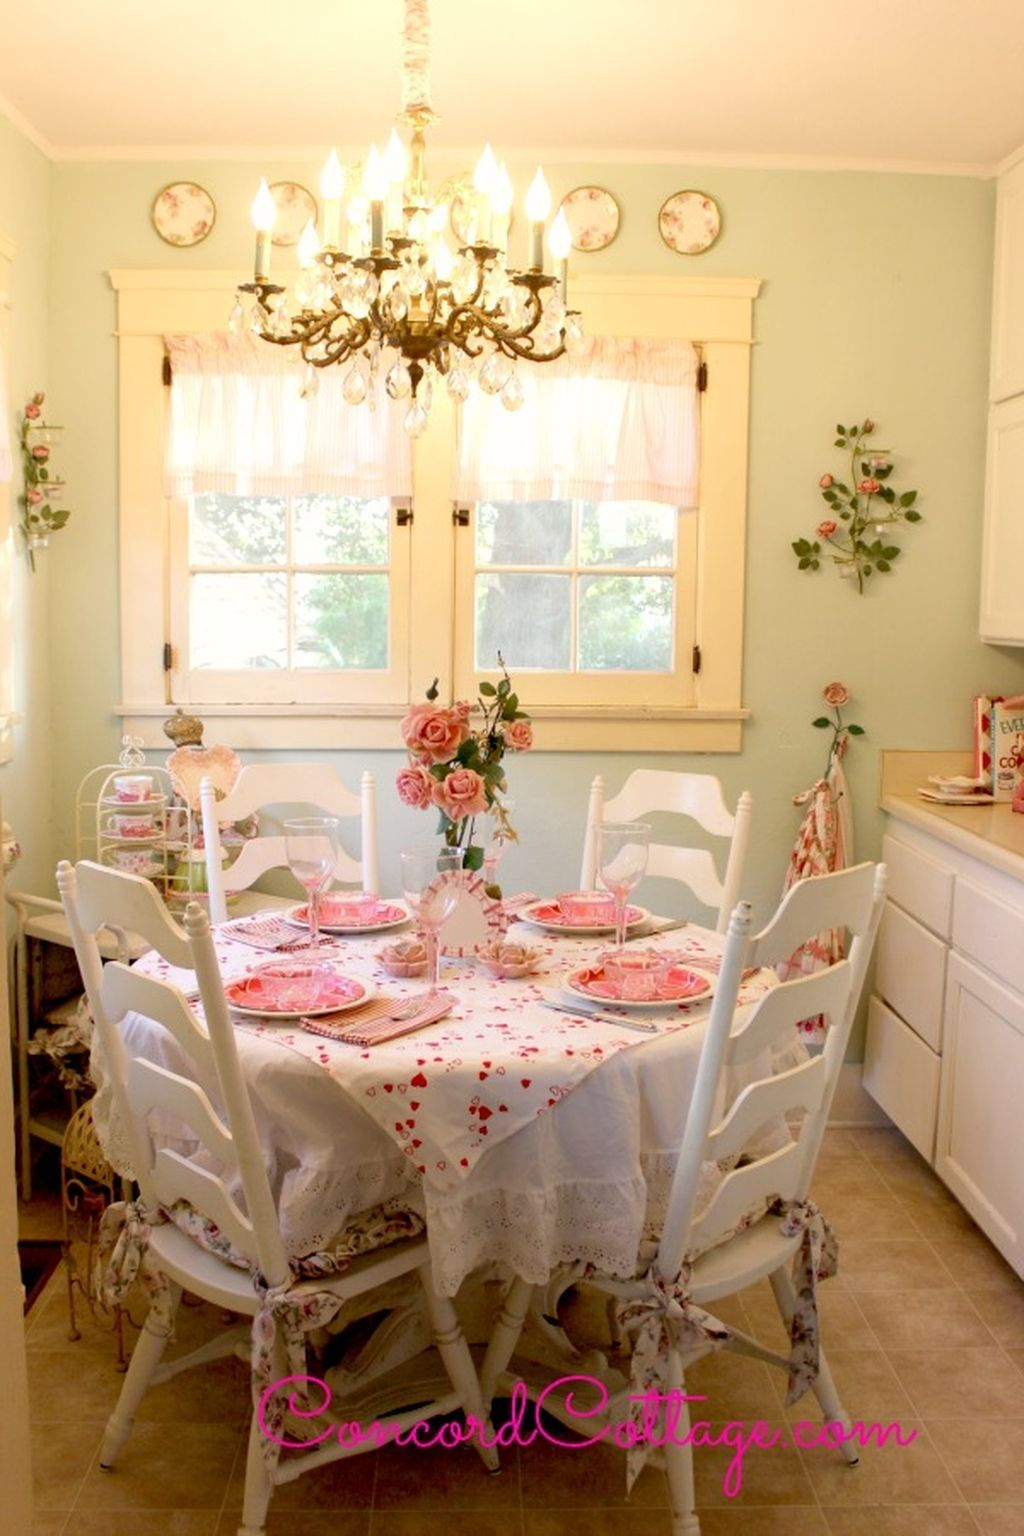 Stunning Romantic Dining Room Decor Ideas Best For Valentines Day 26